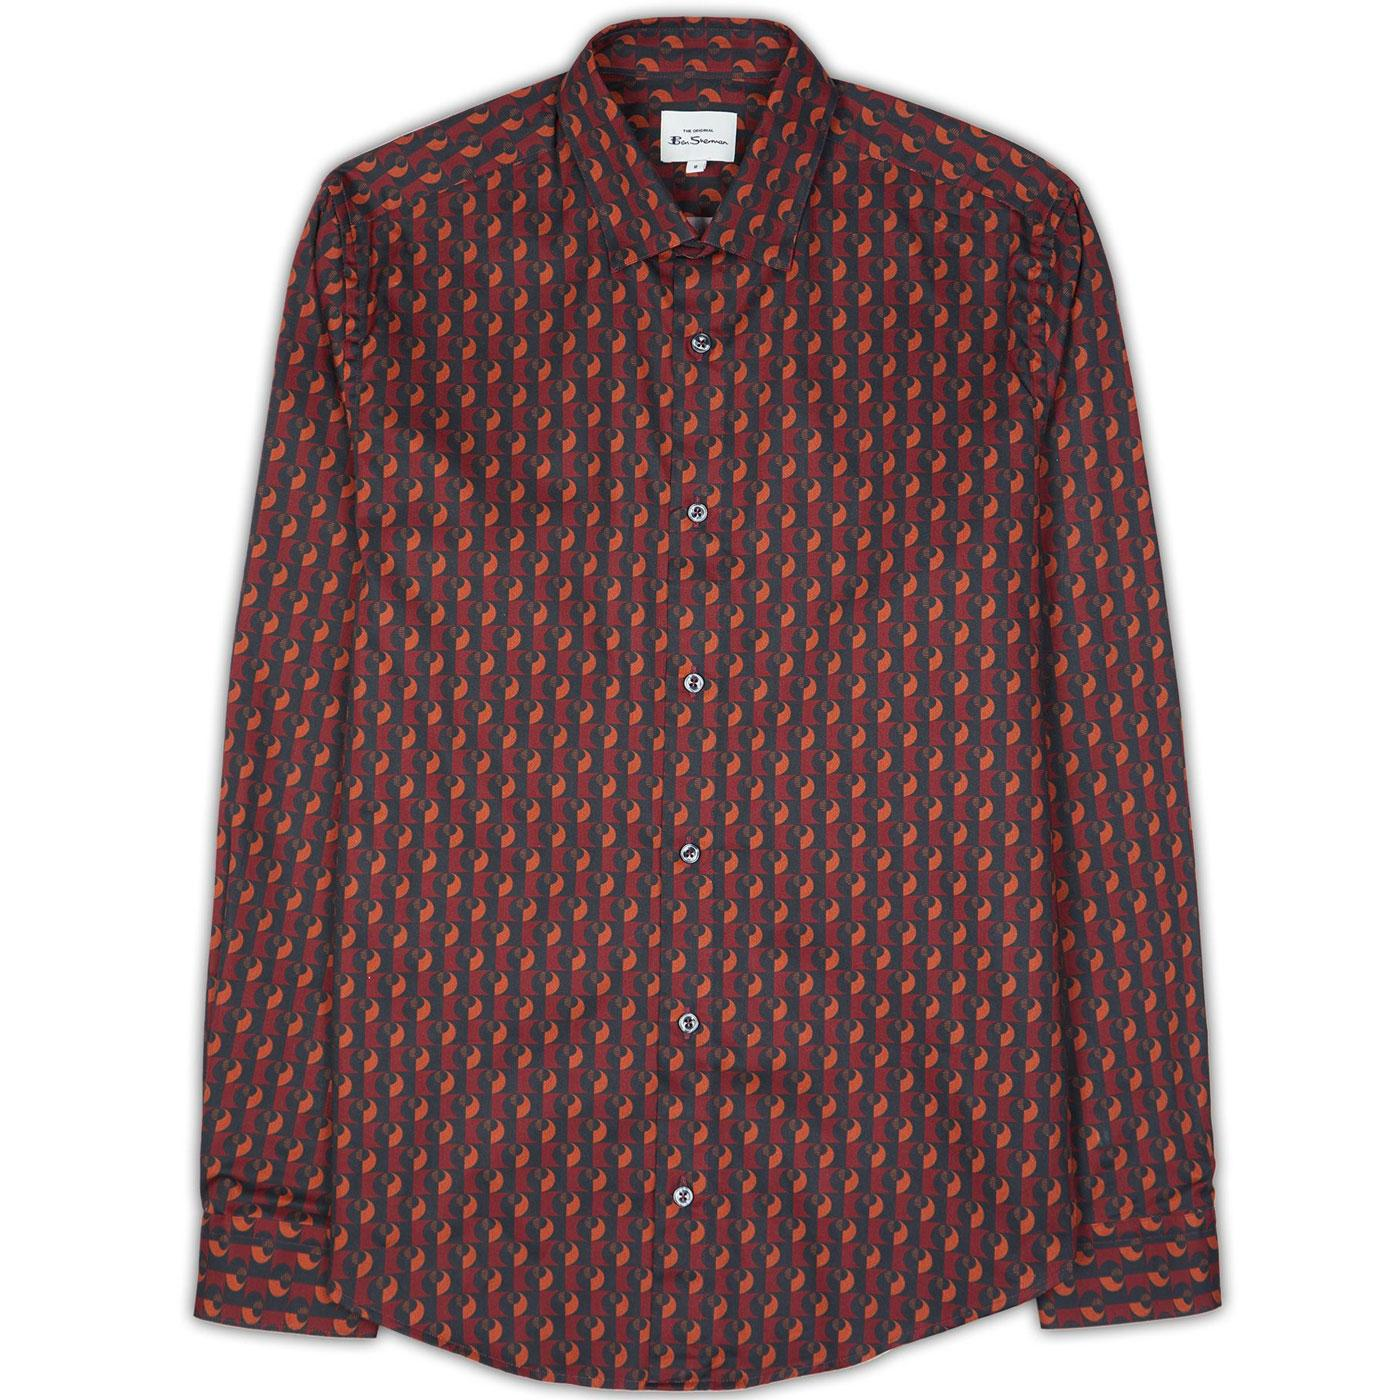 BEN SHERMAN Men's Mod Retro Digi Print Shirt -Gold